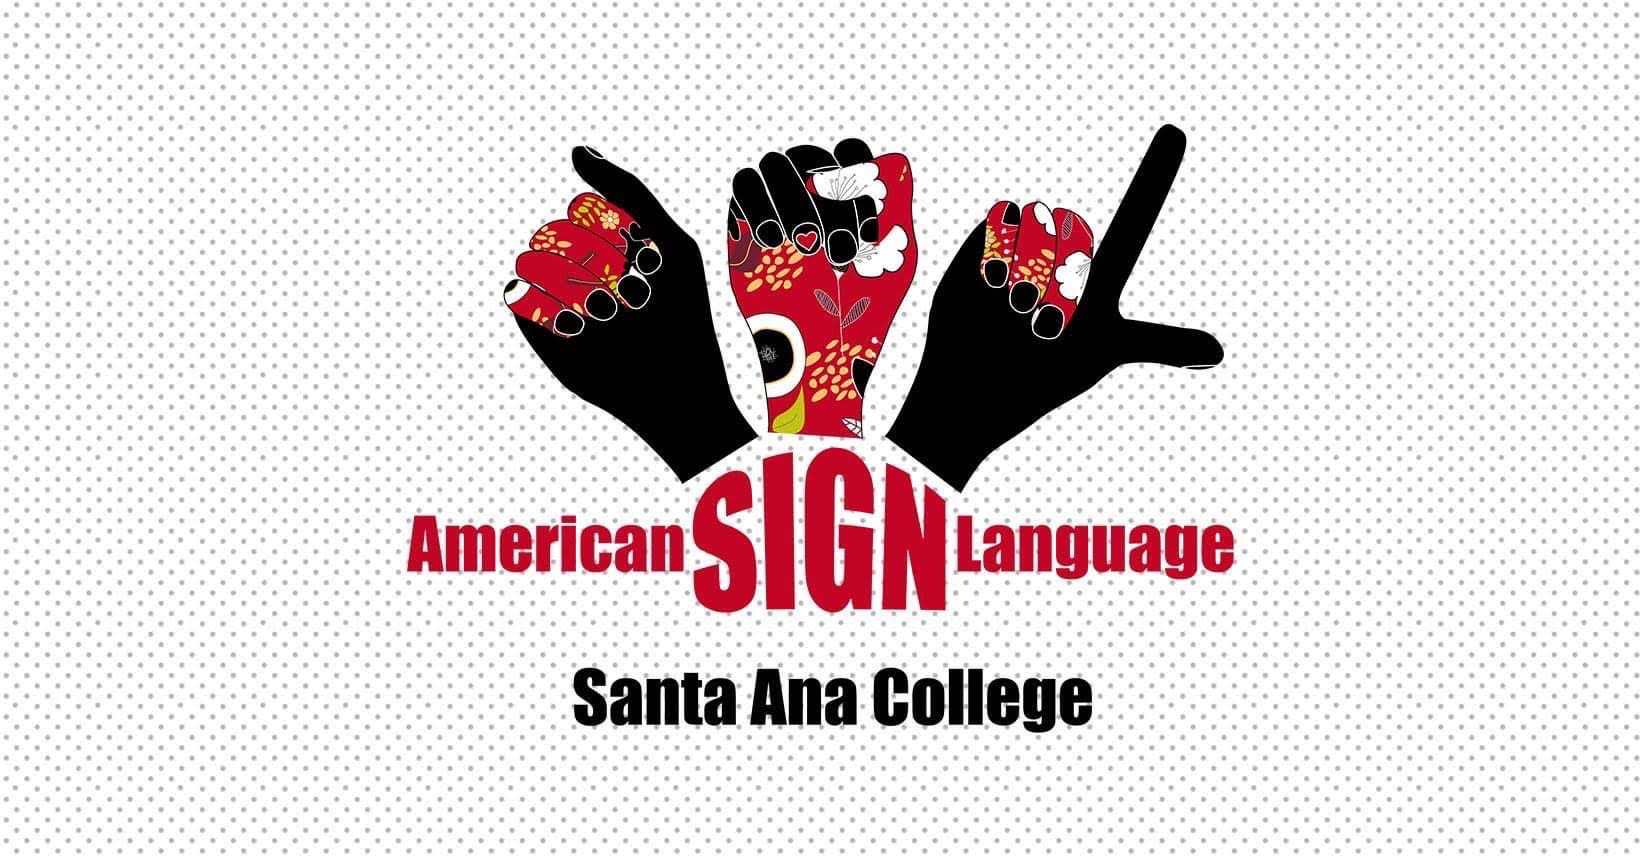 American Sign Language, Santa Ana College